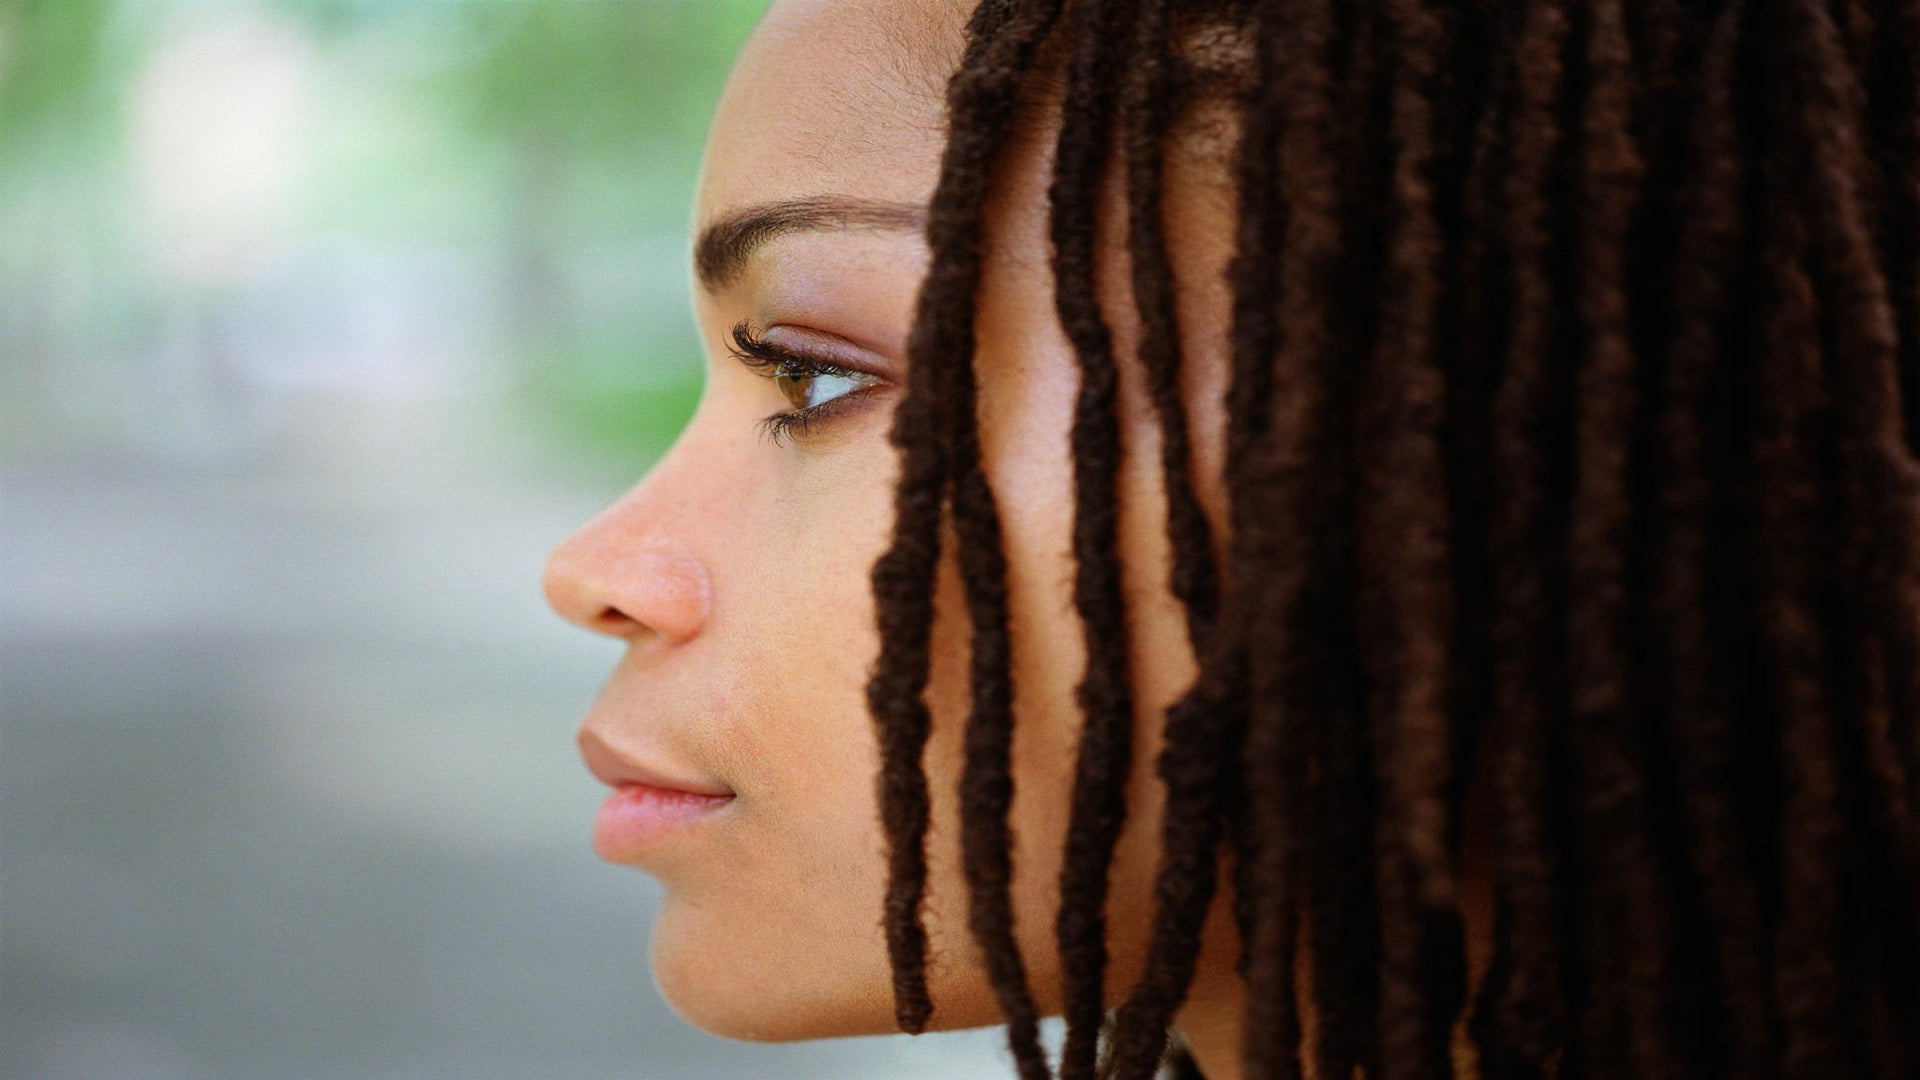 Judge Rules Banning Dreadlocks In The Workplace Is Not Discrimination